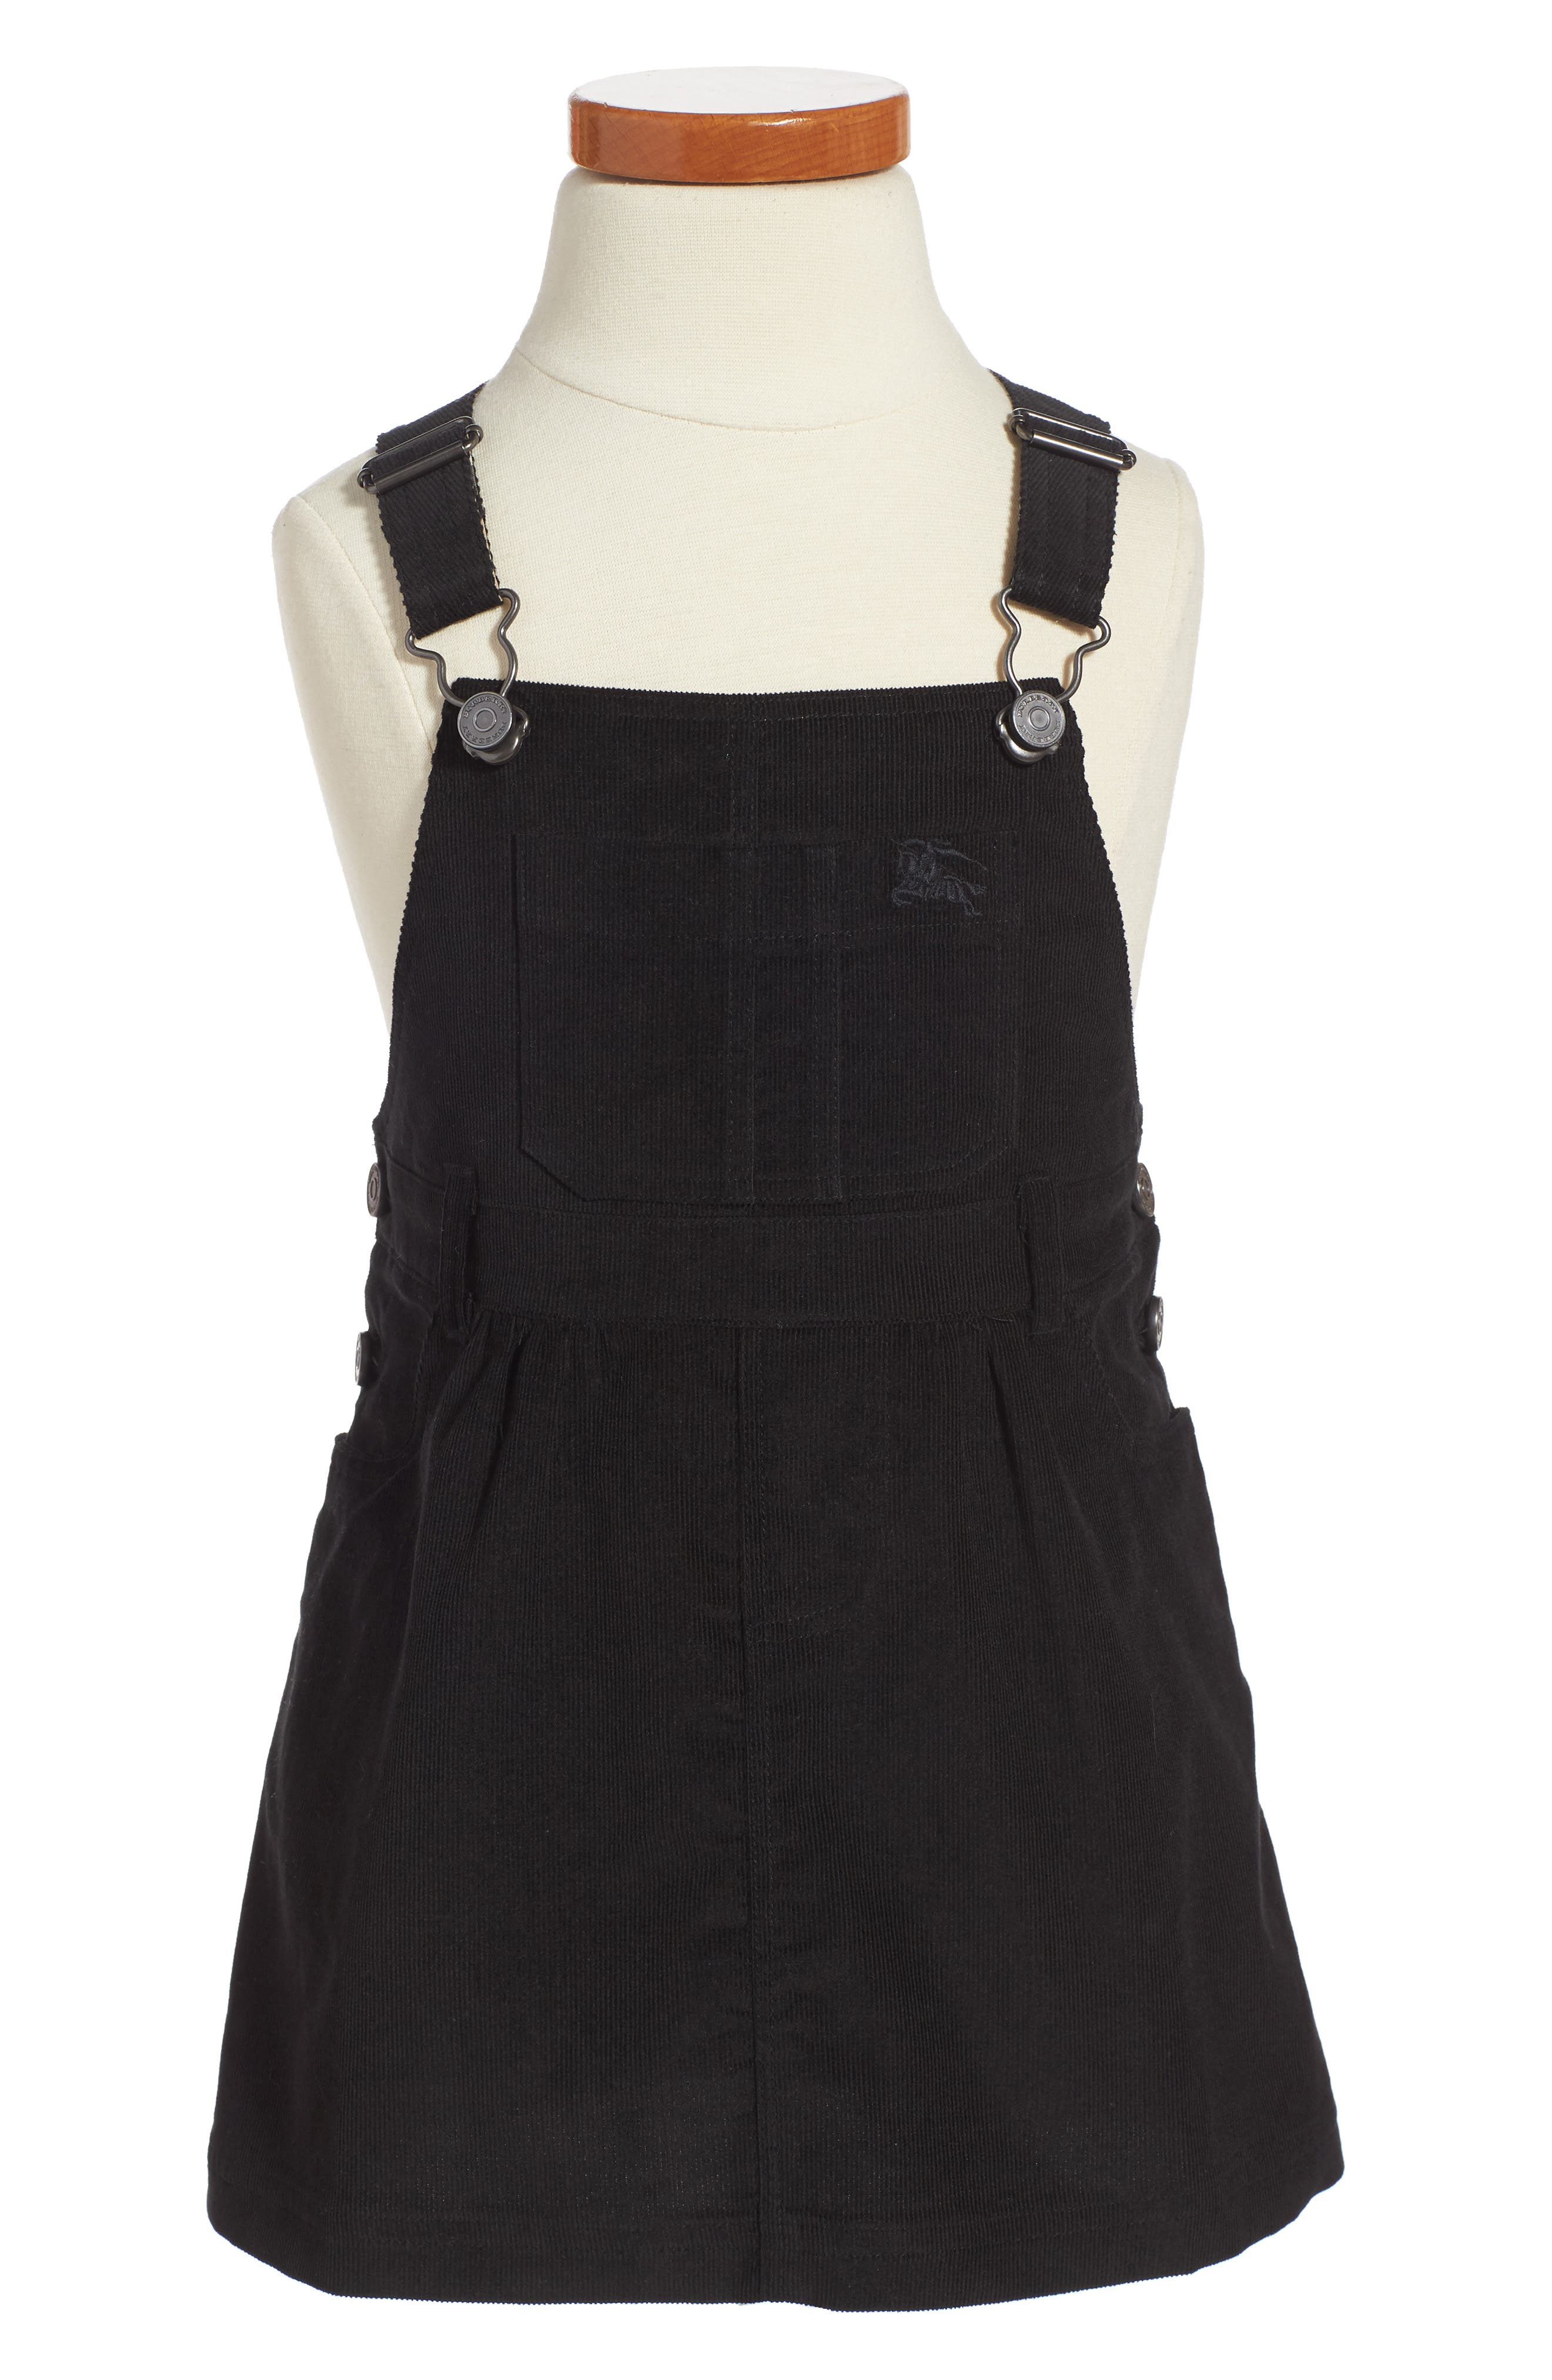 Wilma Overalls Dress,                         Main,                         color, 001